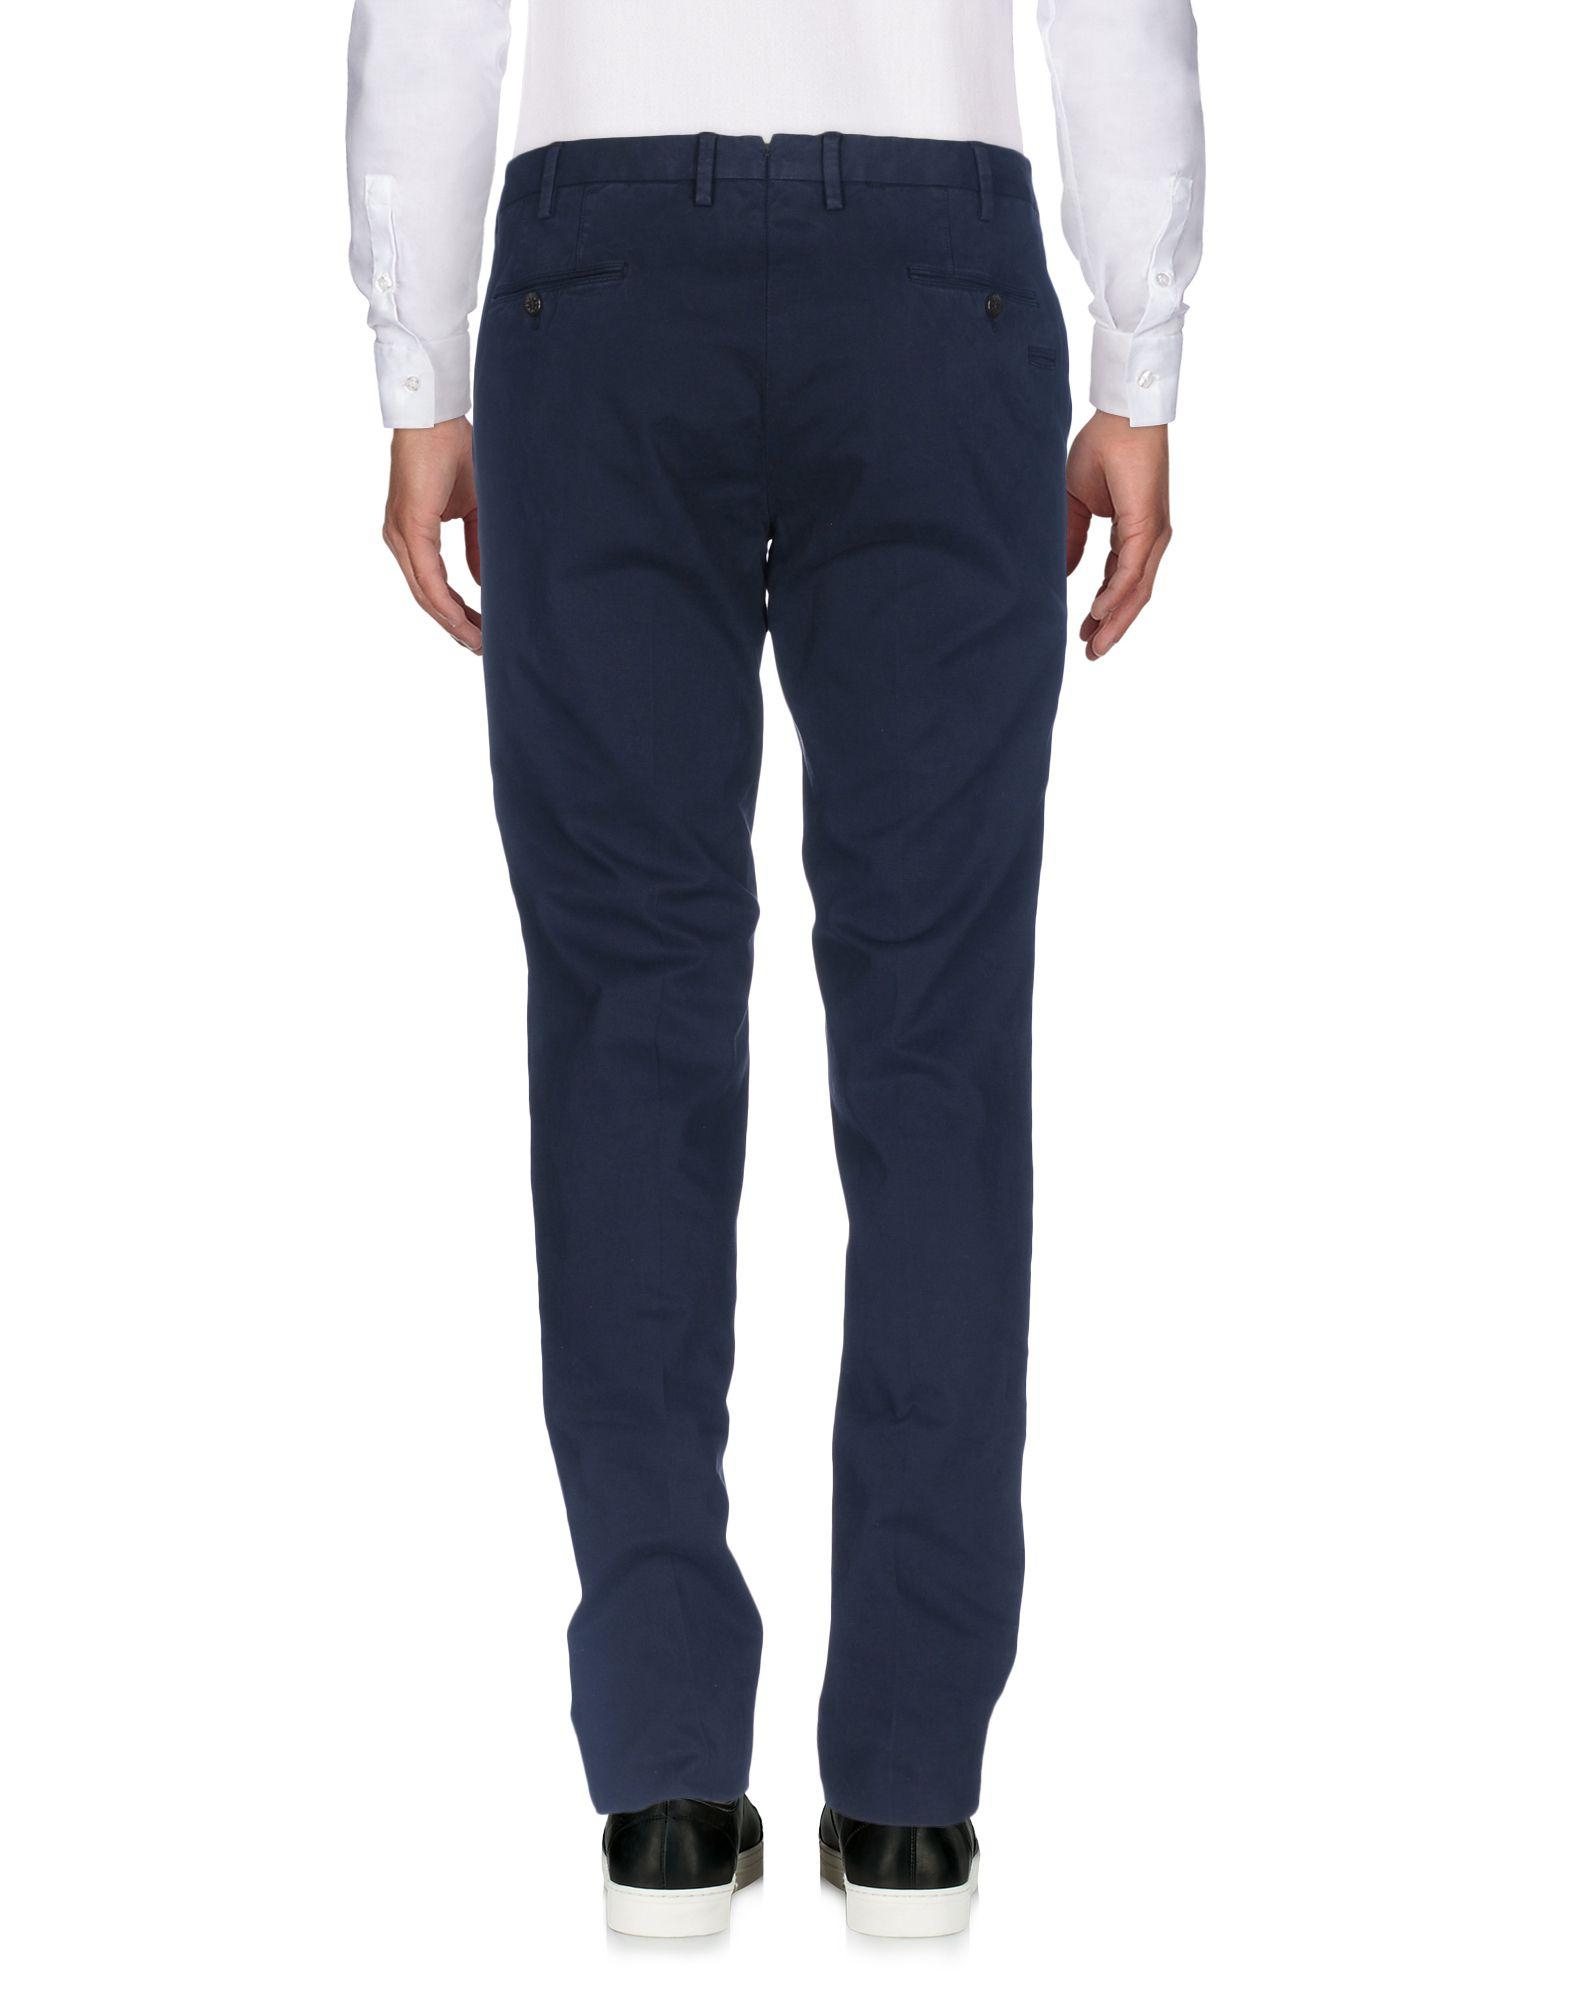 PT Torino Cotton Casual Pants in Slate Blue (Blue) for Men